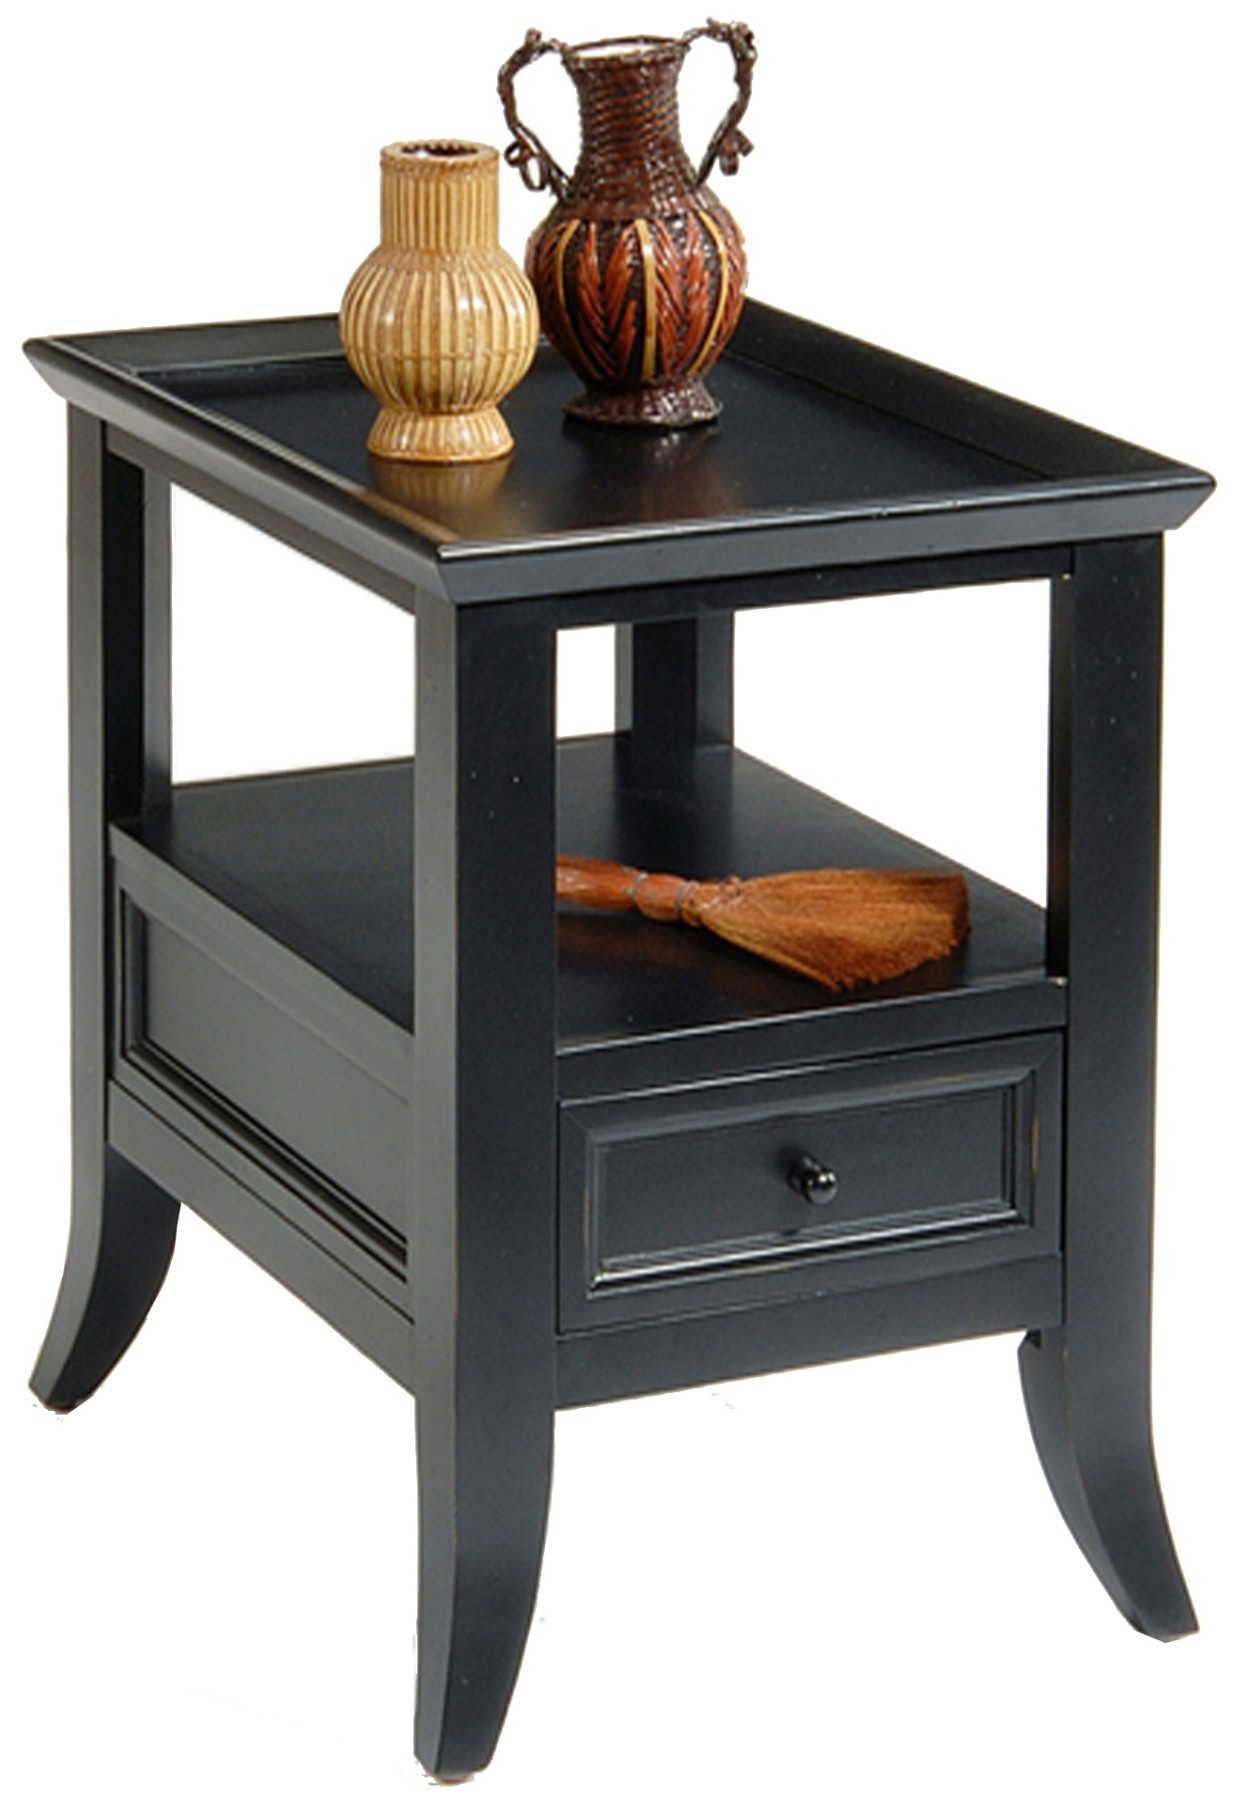 915 occasional drawer end table from liberty 915 ot1021 for Occasional table with drawers